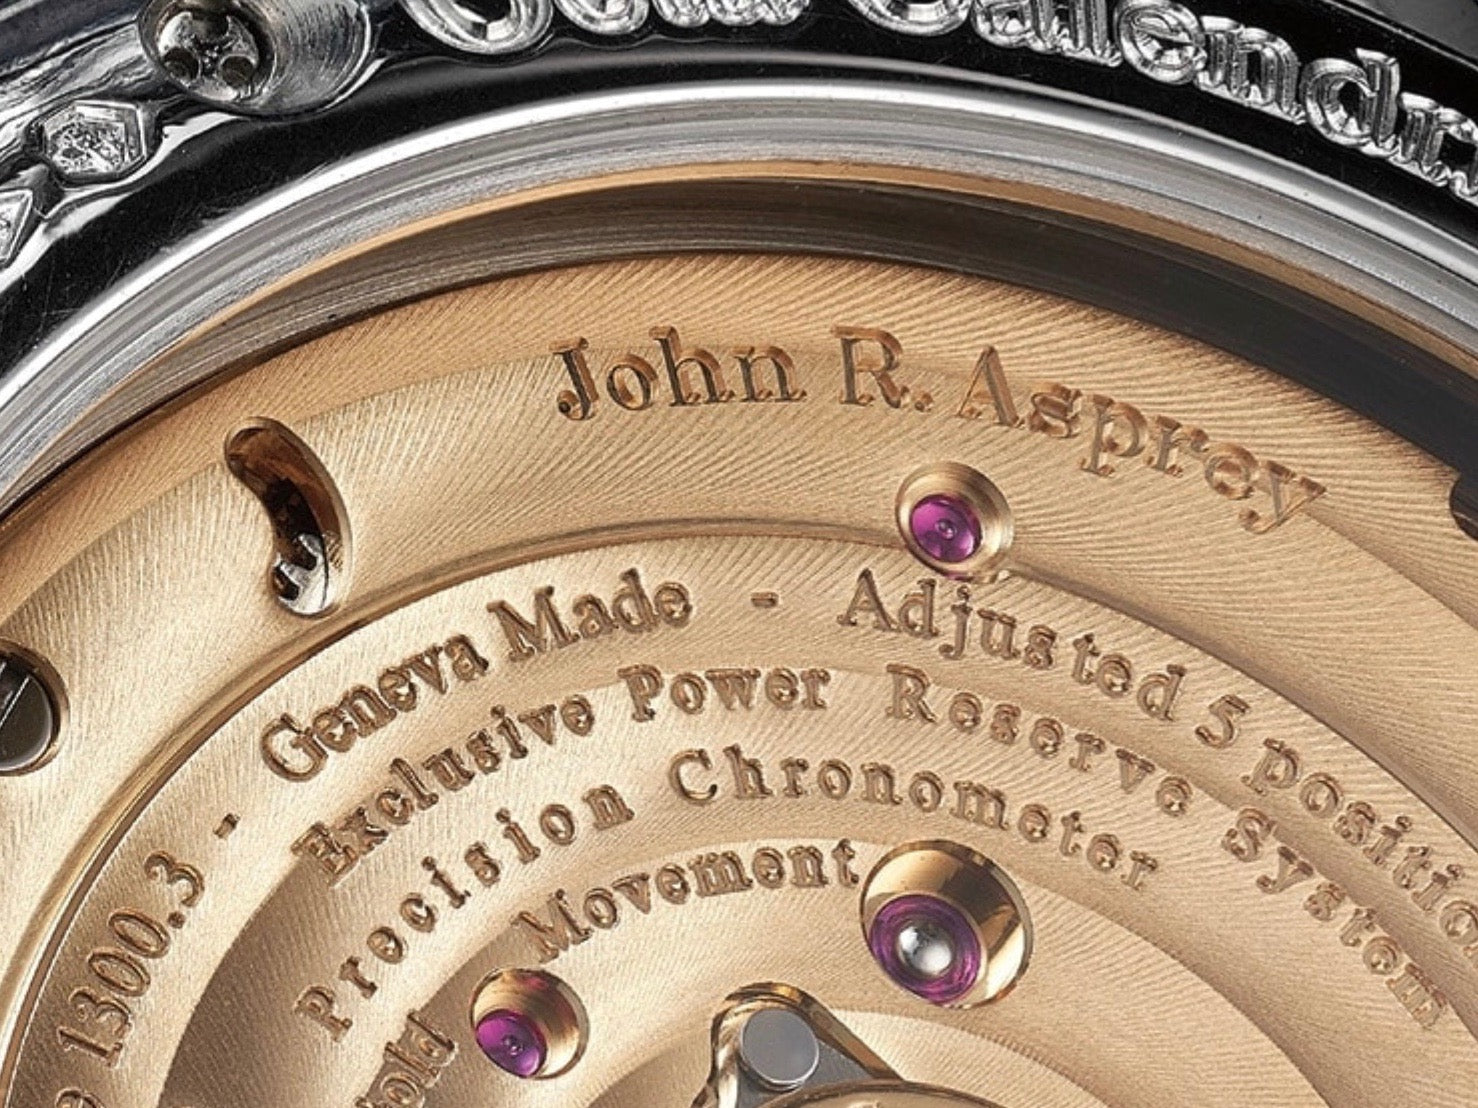 John R. Asprey signature on the movement of an F.P. Journe wristwatch